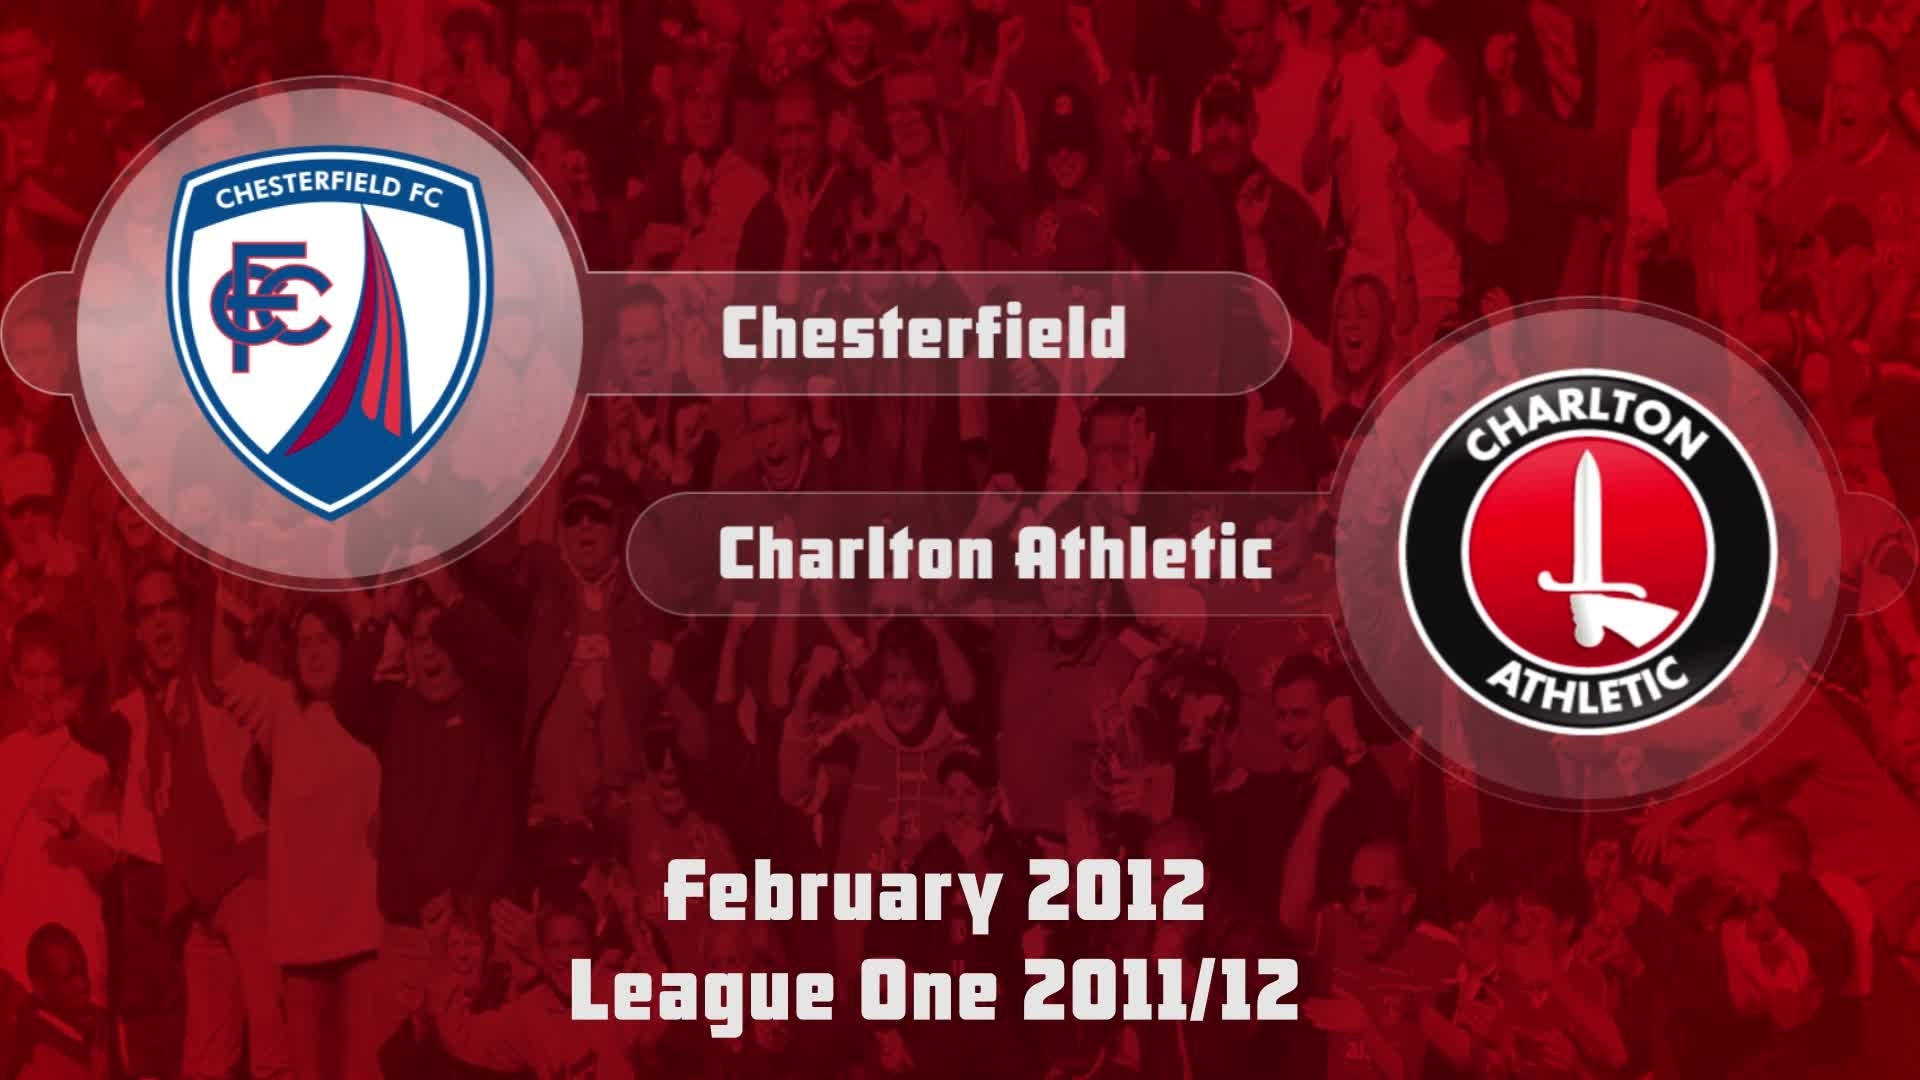 39 HIGHLIGHTS | Chesterfield 0 Charlton 4 (Feb 2012)